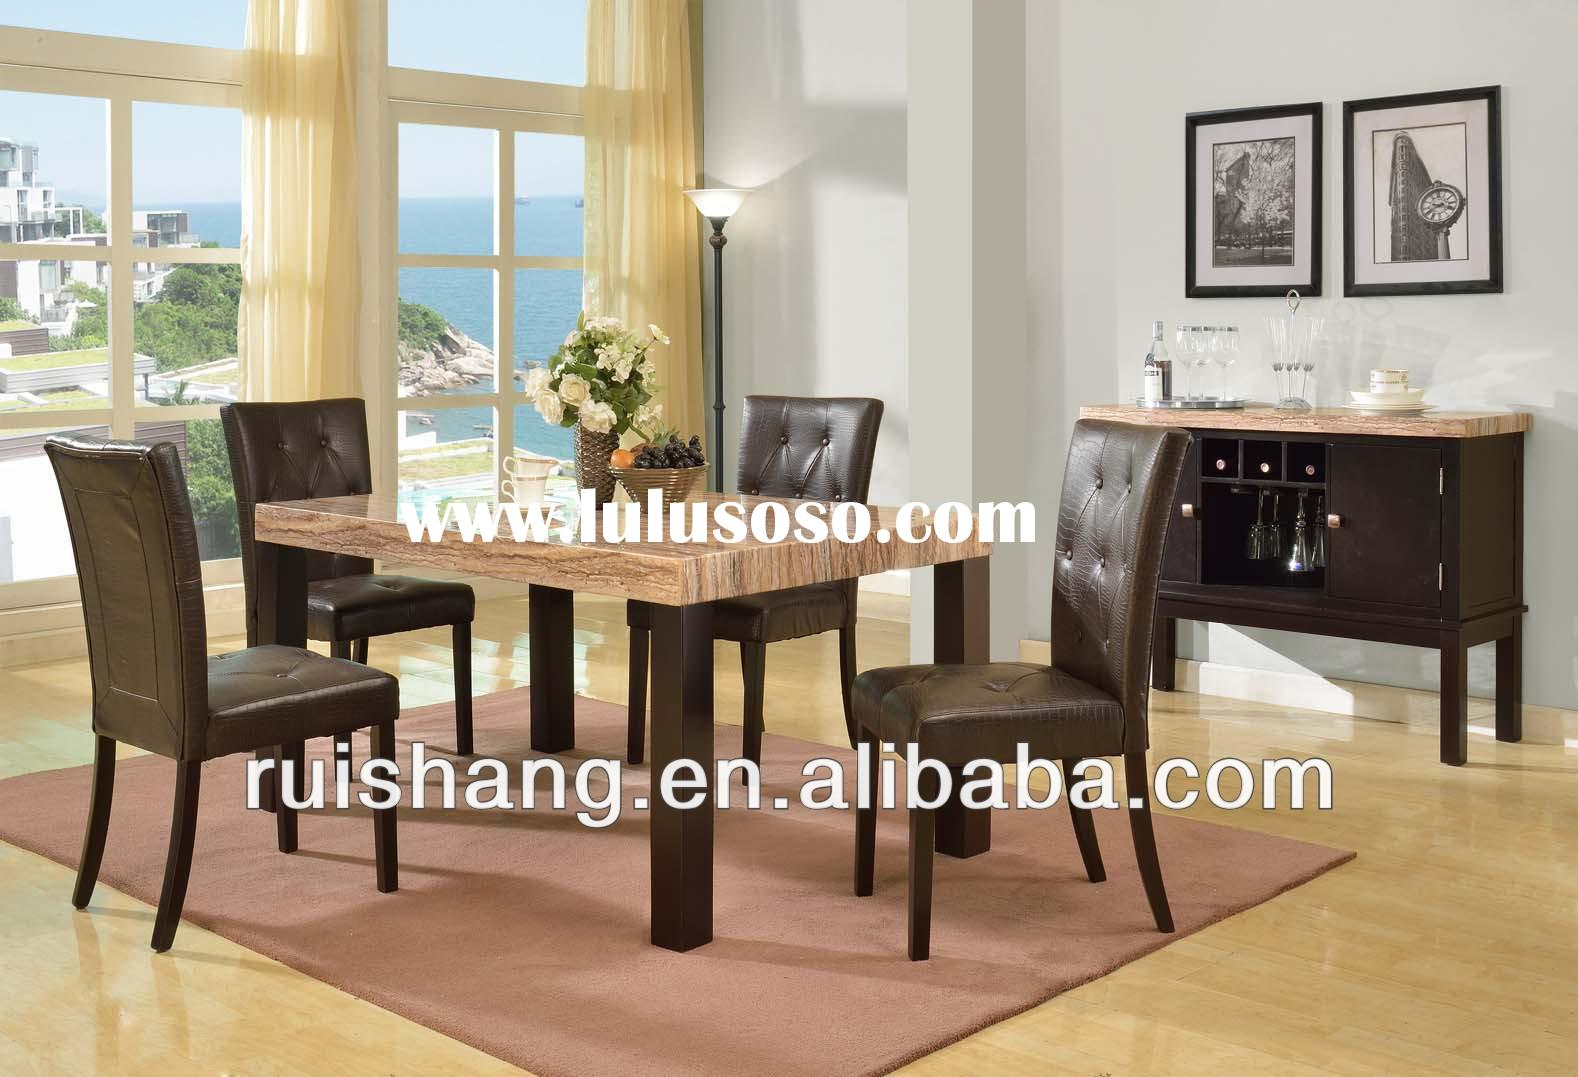 Promotiomnal solid wood dining table with faux marble top and 4pcs crocodile leather pattern dining